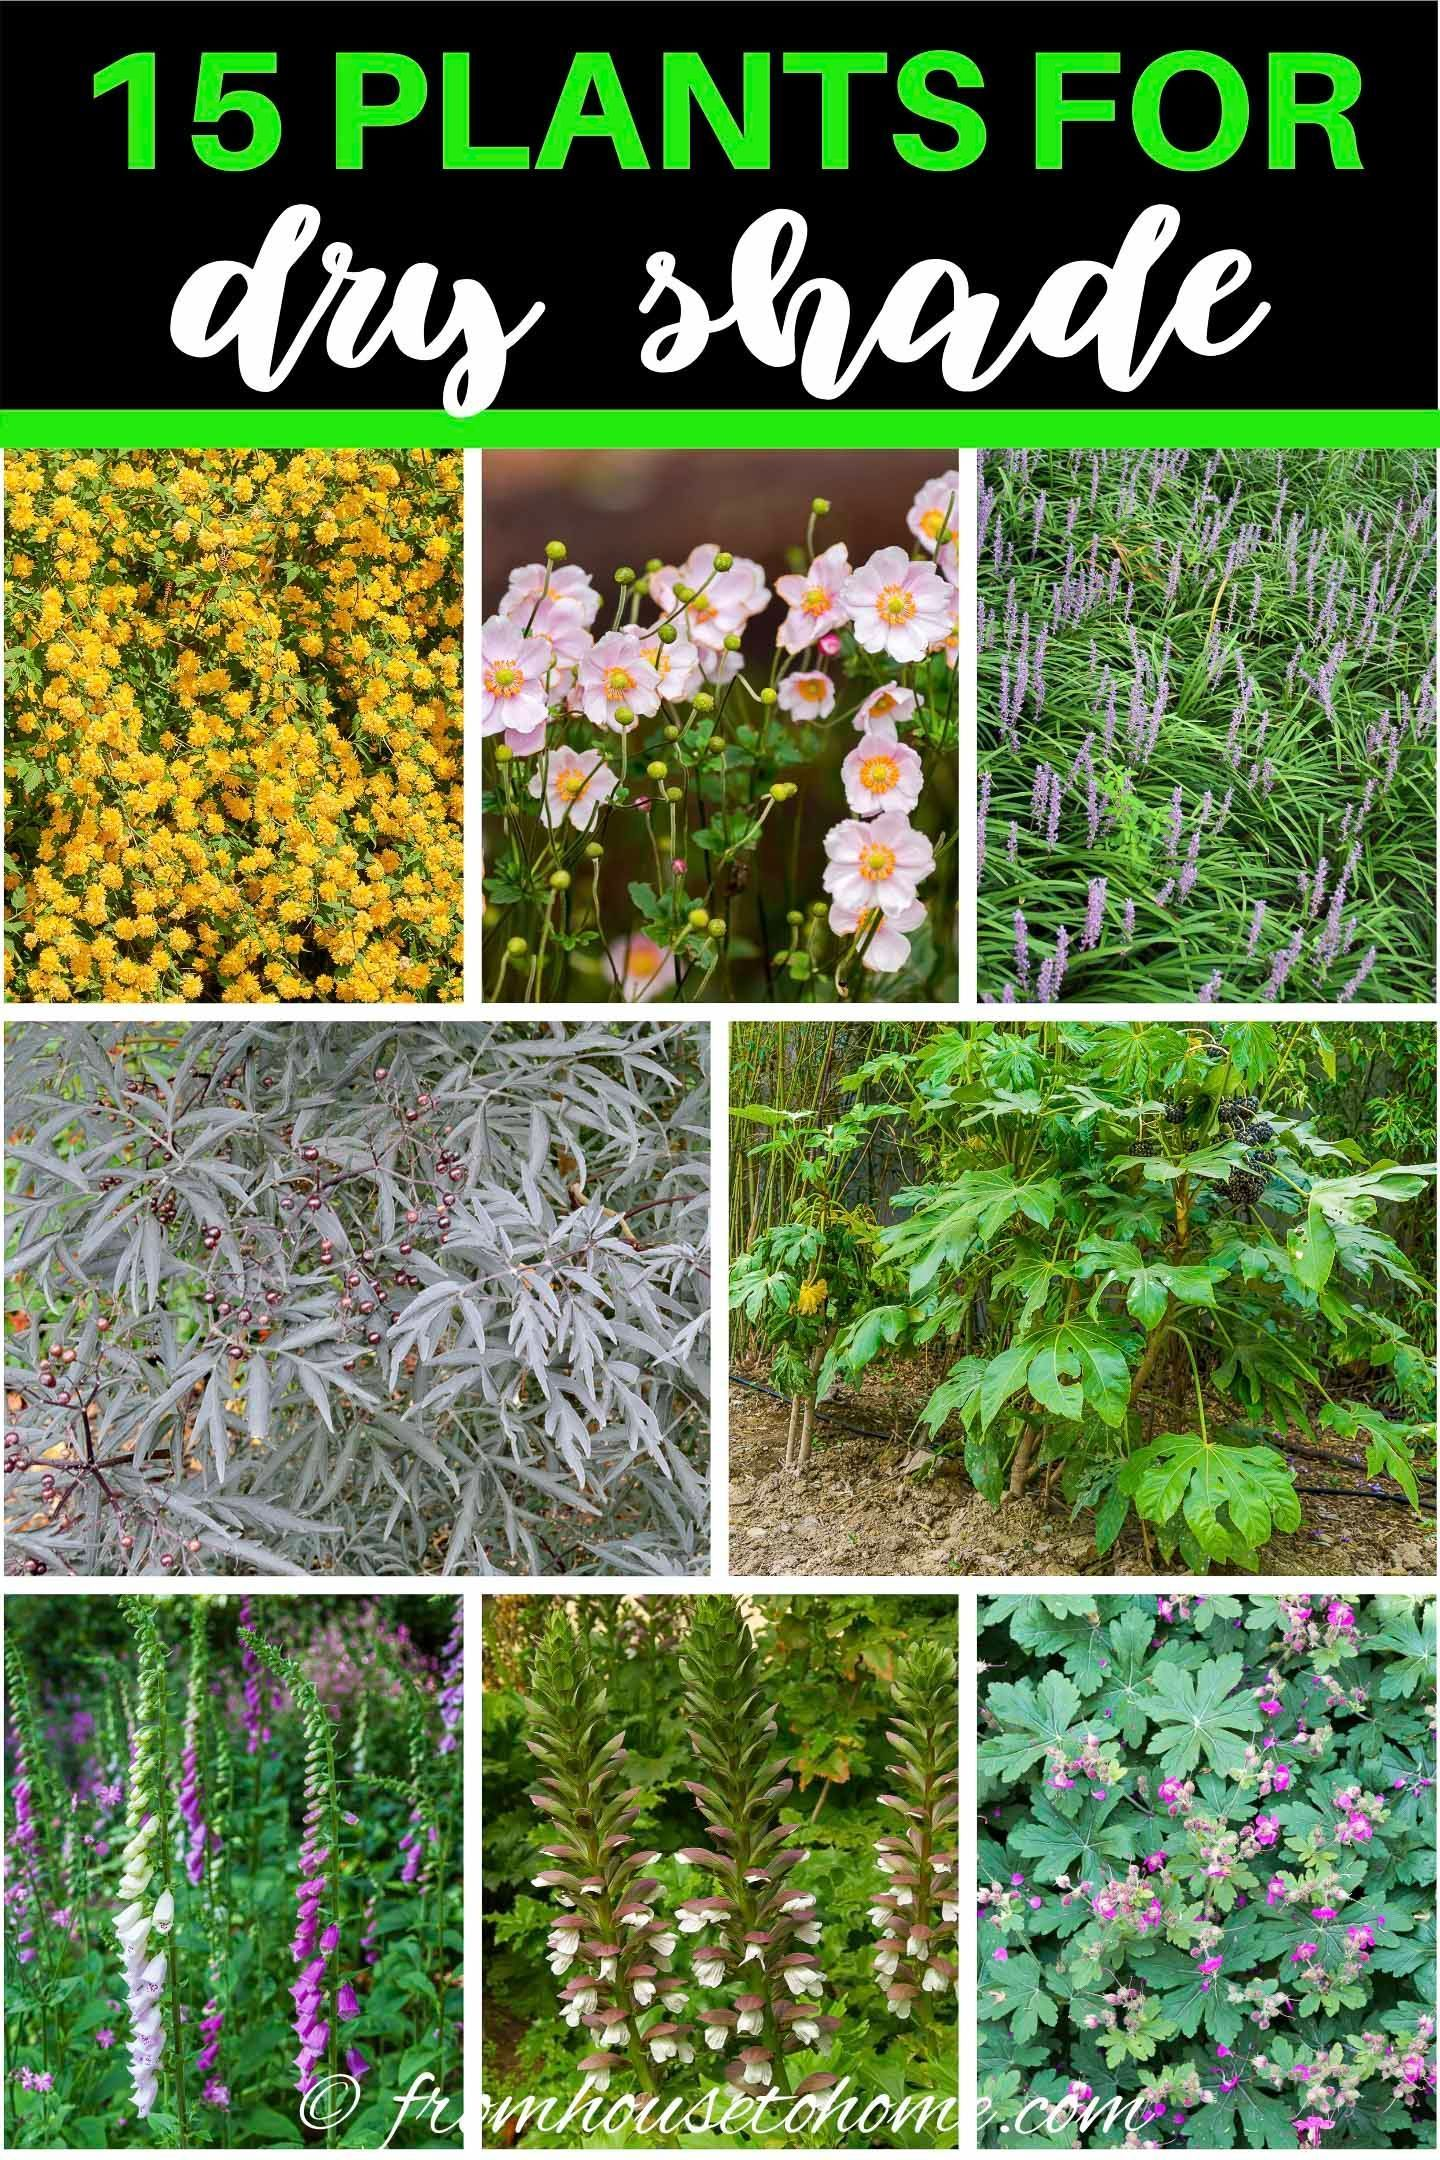 15 Of The Best Plants For Dry Shade Gardens Gardening From House To Home Dry Gardening Gardens Home House P In 2020 Dry Shade Plants Shade Plants Shade Garden